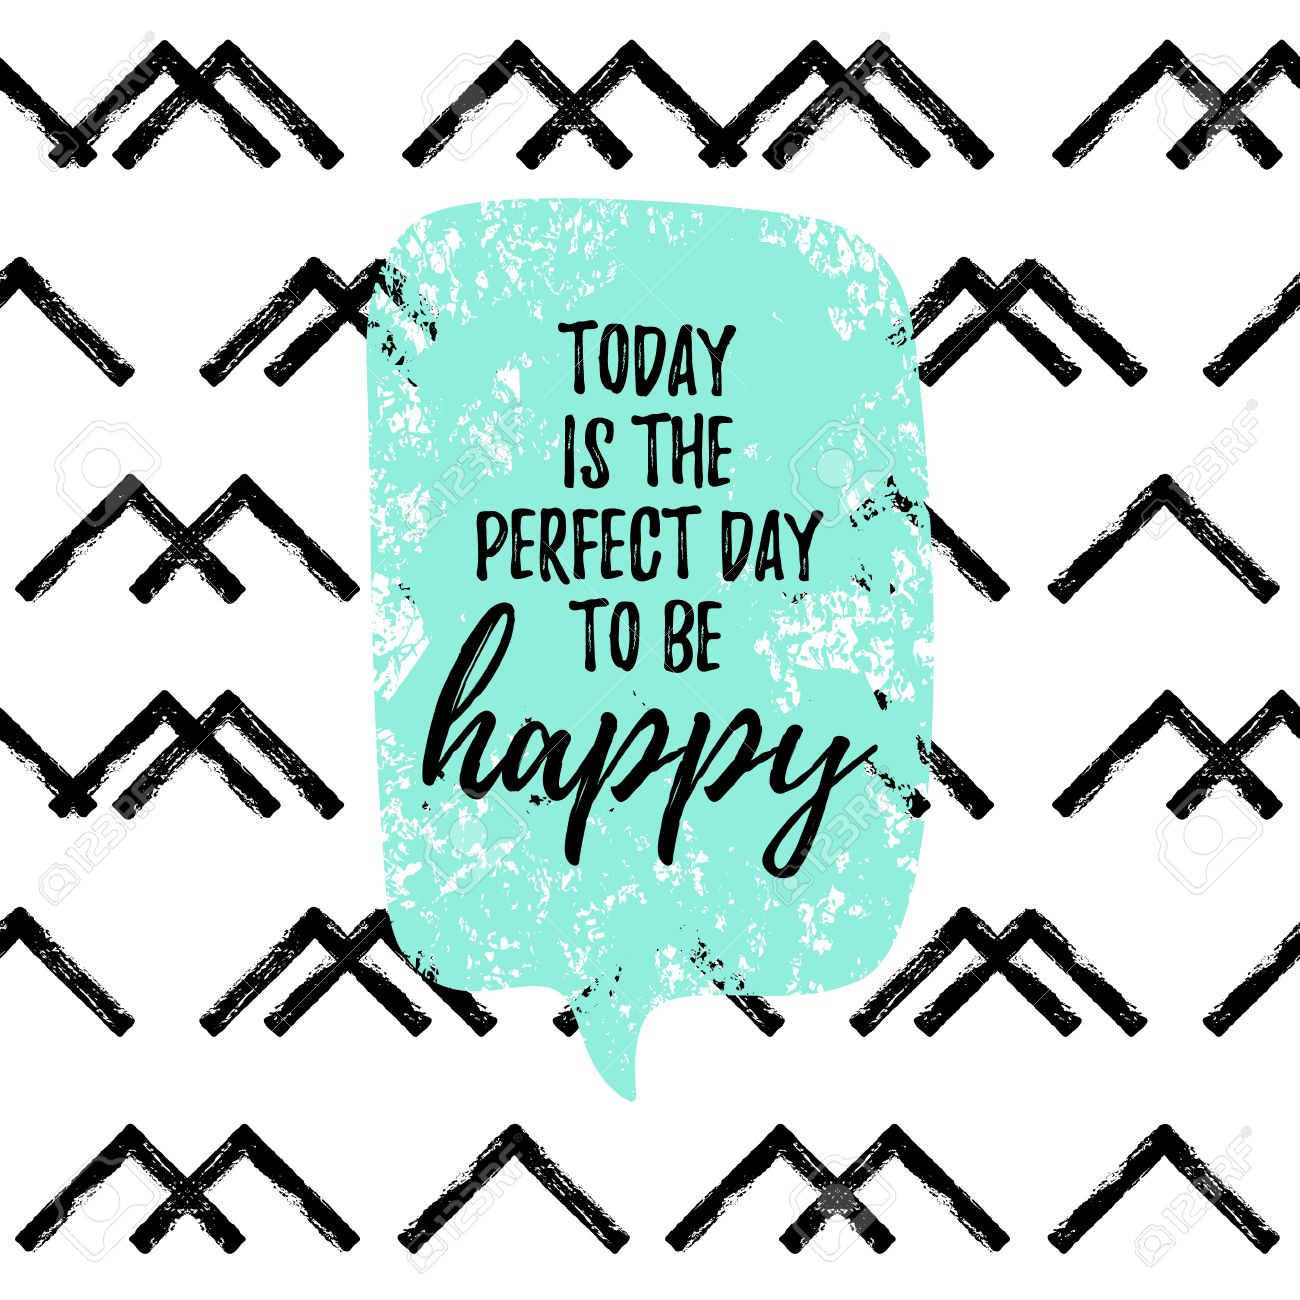 Today Is The Perfect Day To Be Happy Fashion Graphic Print Greeting